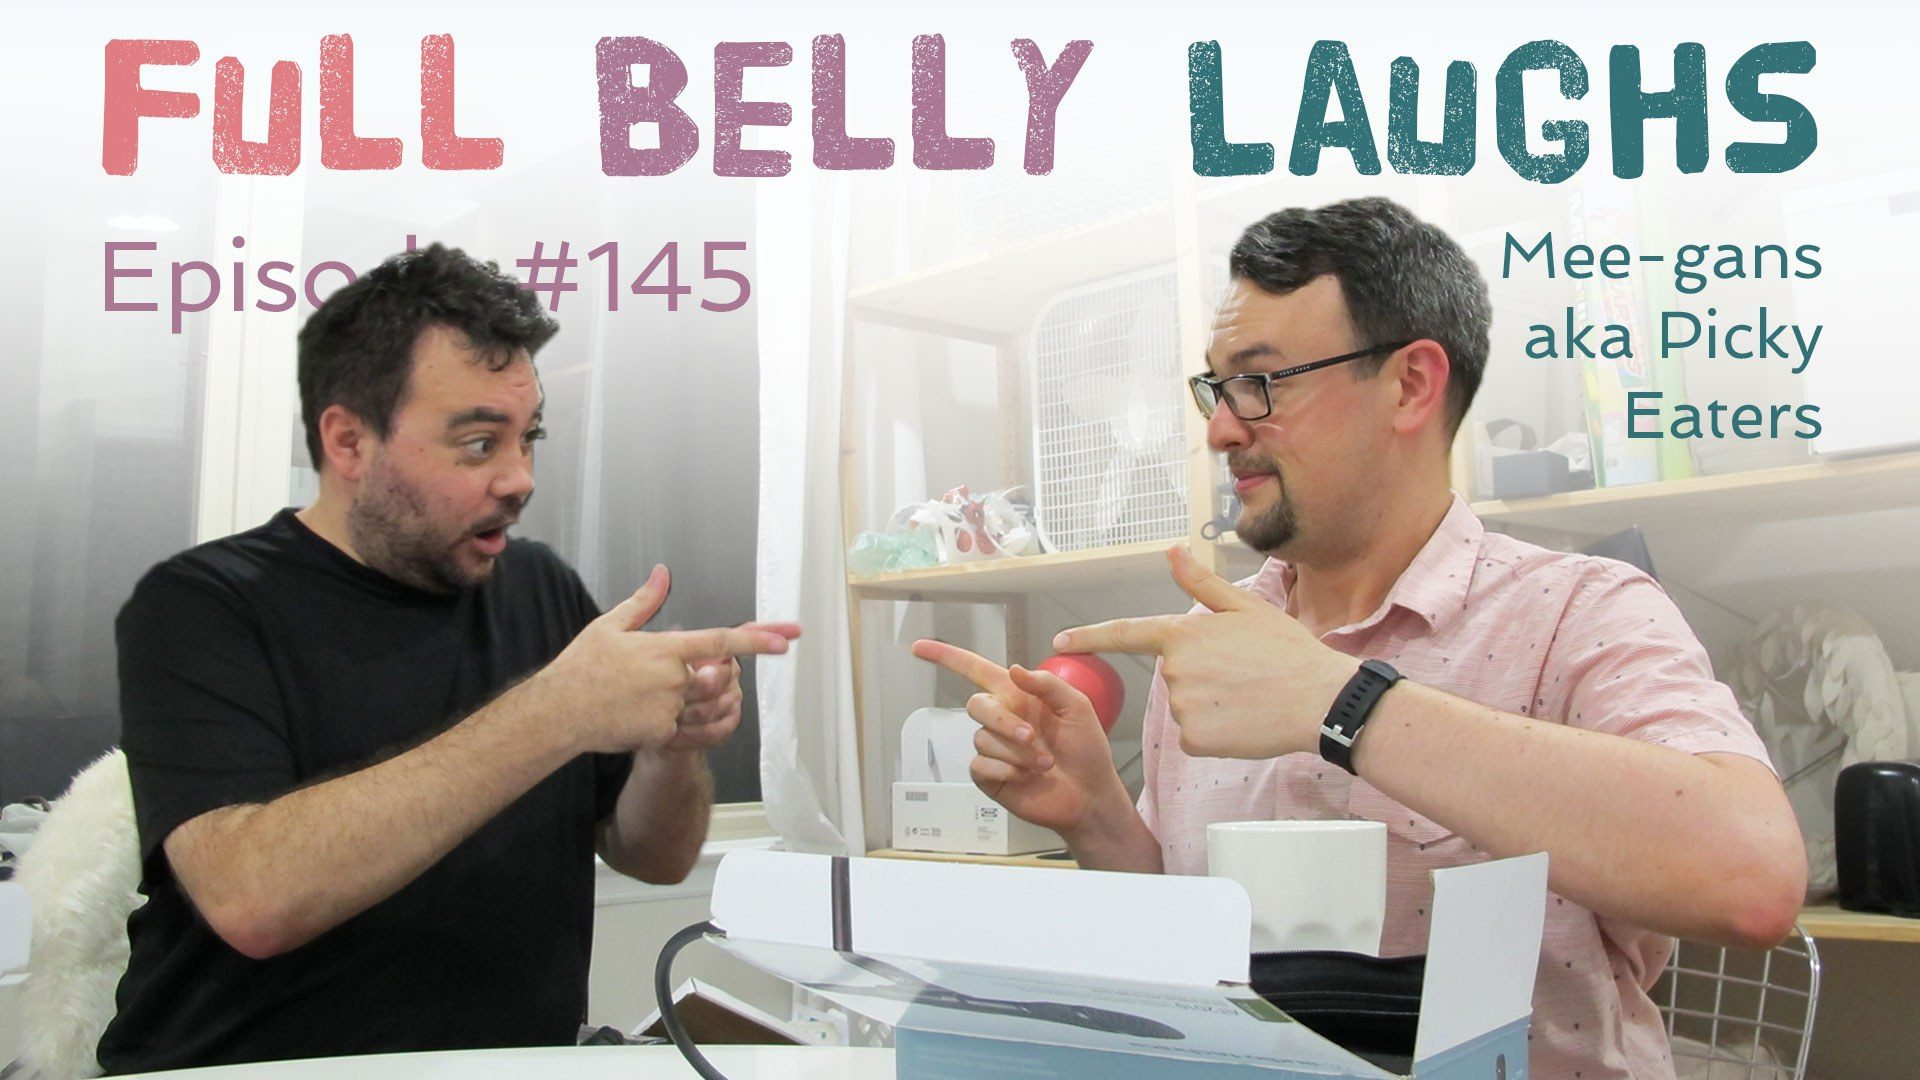 full belly laughs podcast episode 145 picky eaters audio artwork